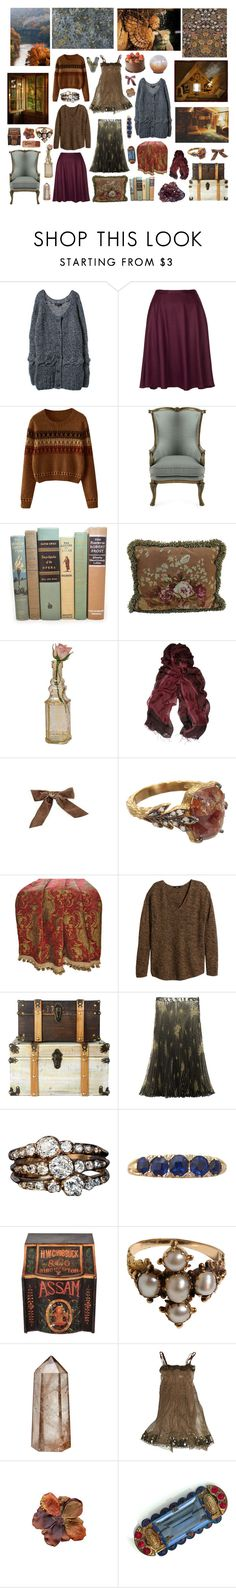 """""""Untitled #2021"""" by zoella ❤ liked on Polyvore featuring Topshop, Massoud, Cultural Intrigue, Lot78, Bocage, Cathy Waterman, Sherry Kline, H&M, RabLabs and Anna Molinari"""